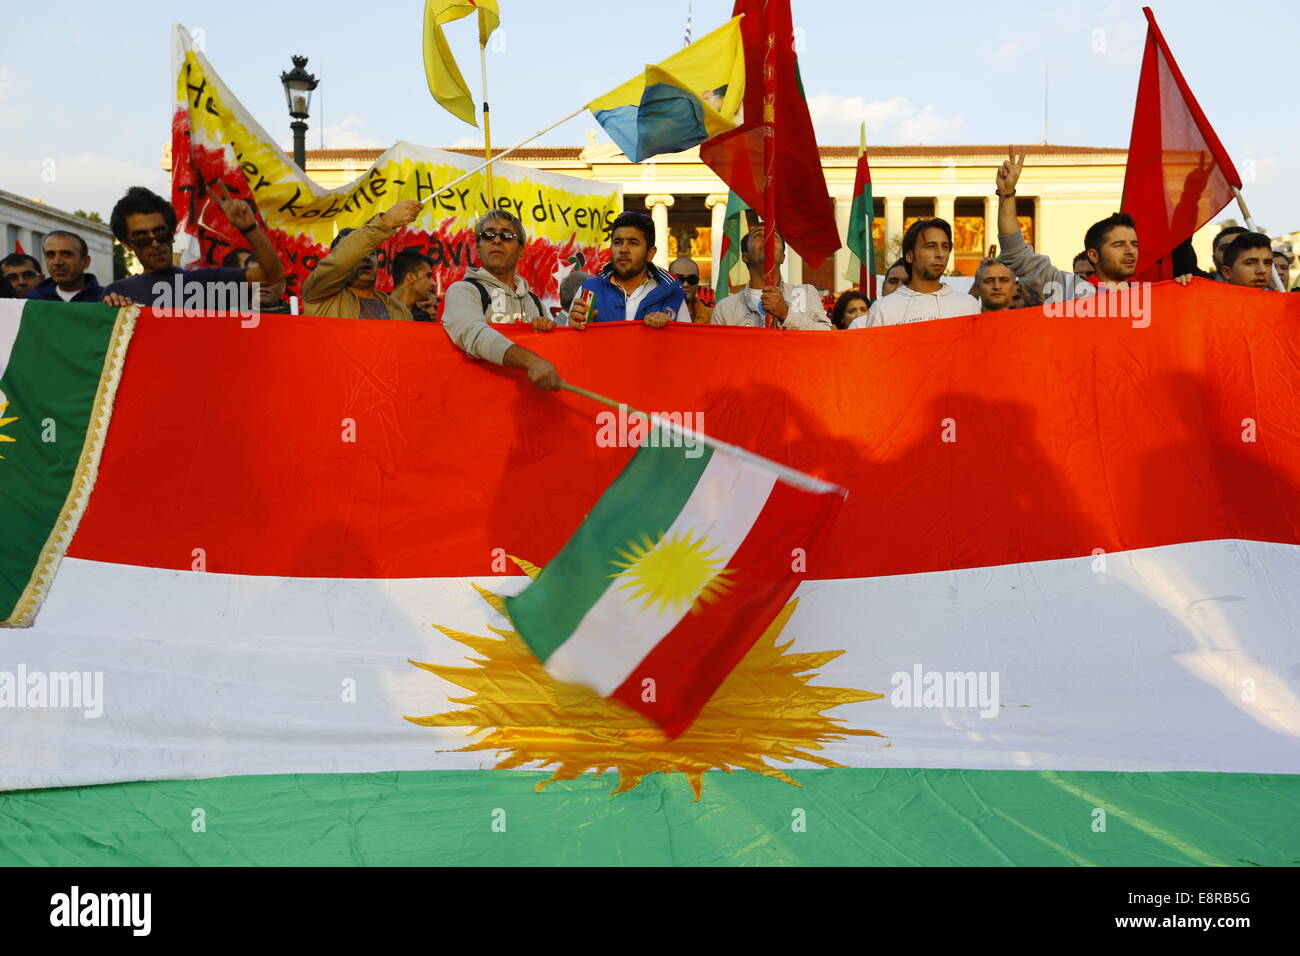 Athens, Greece. 13th October 2014. Protesters wave a Kurdish flag. Kurds living in Greece protested against the - Stock Image